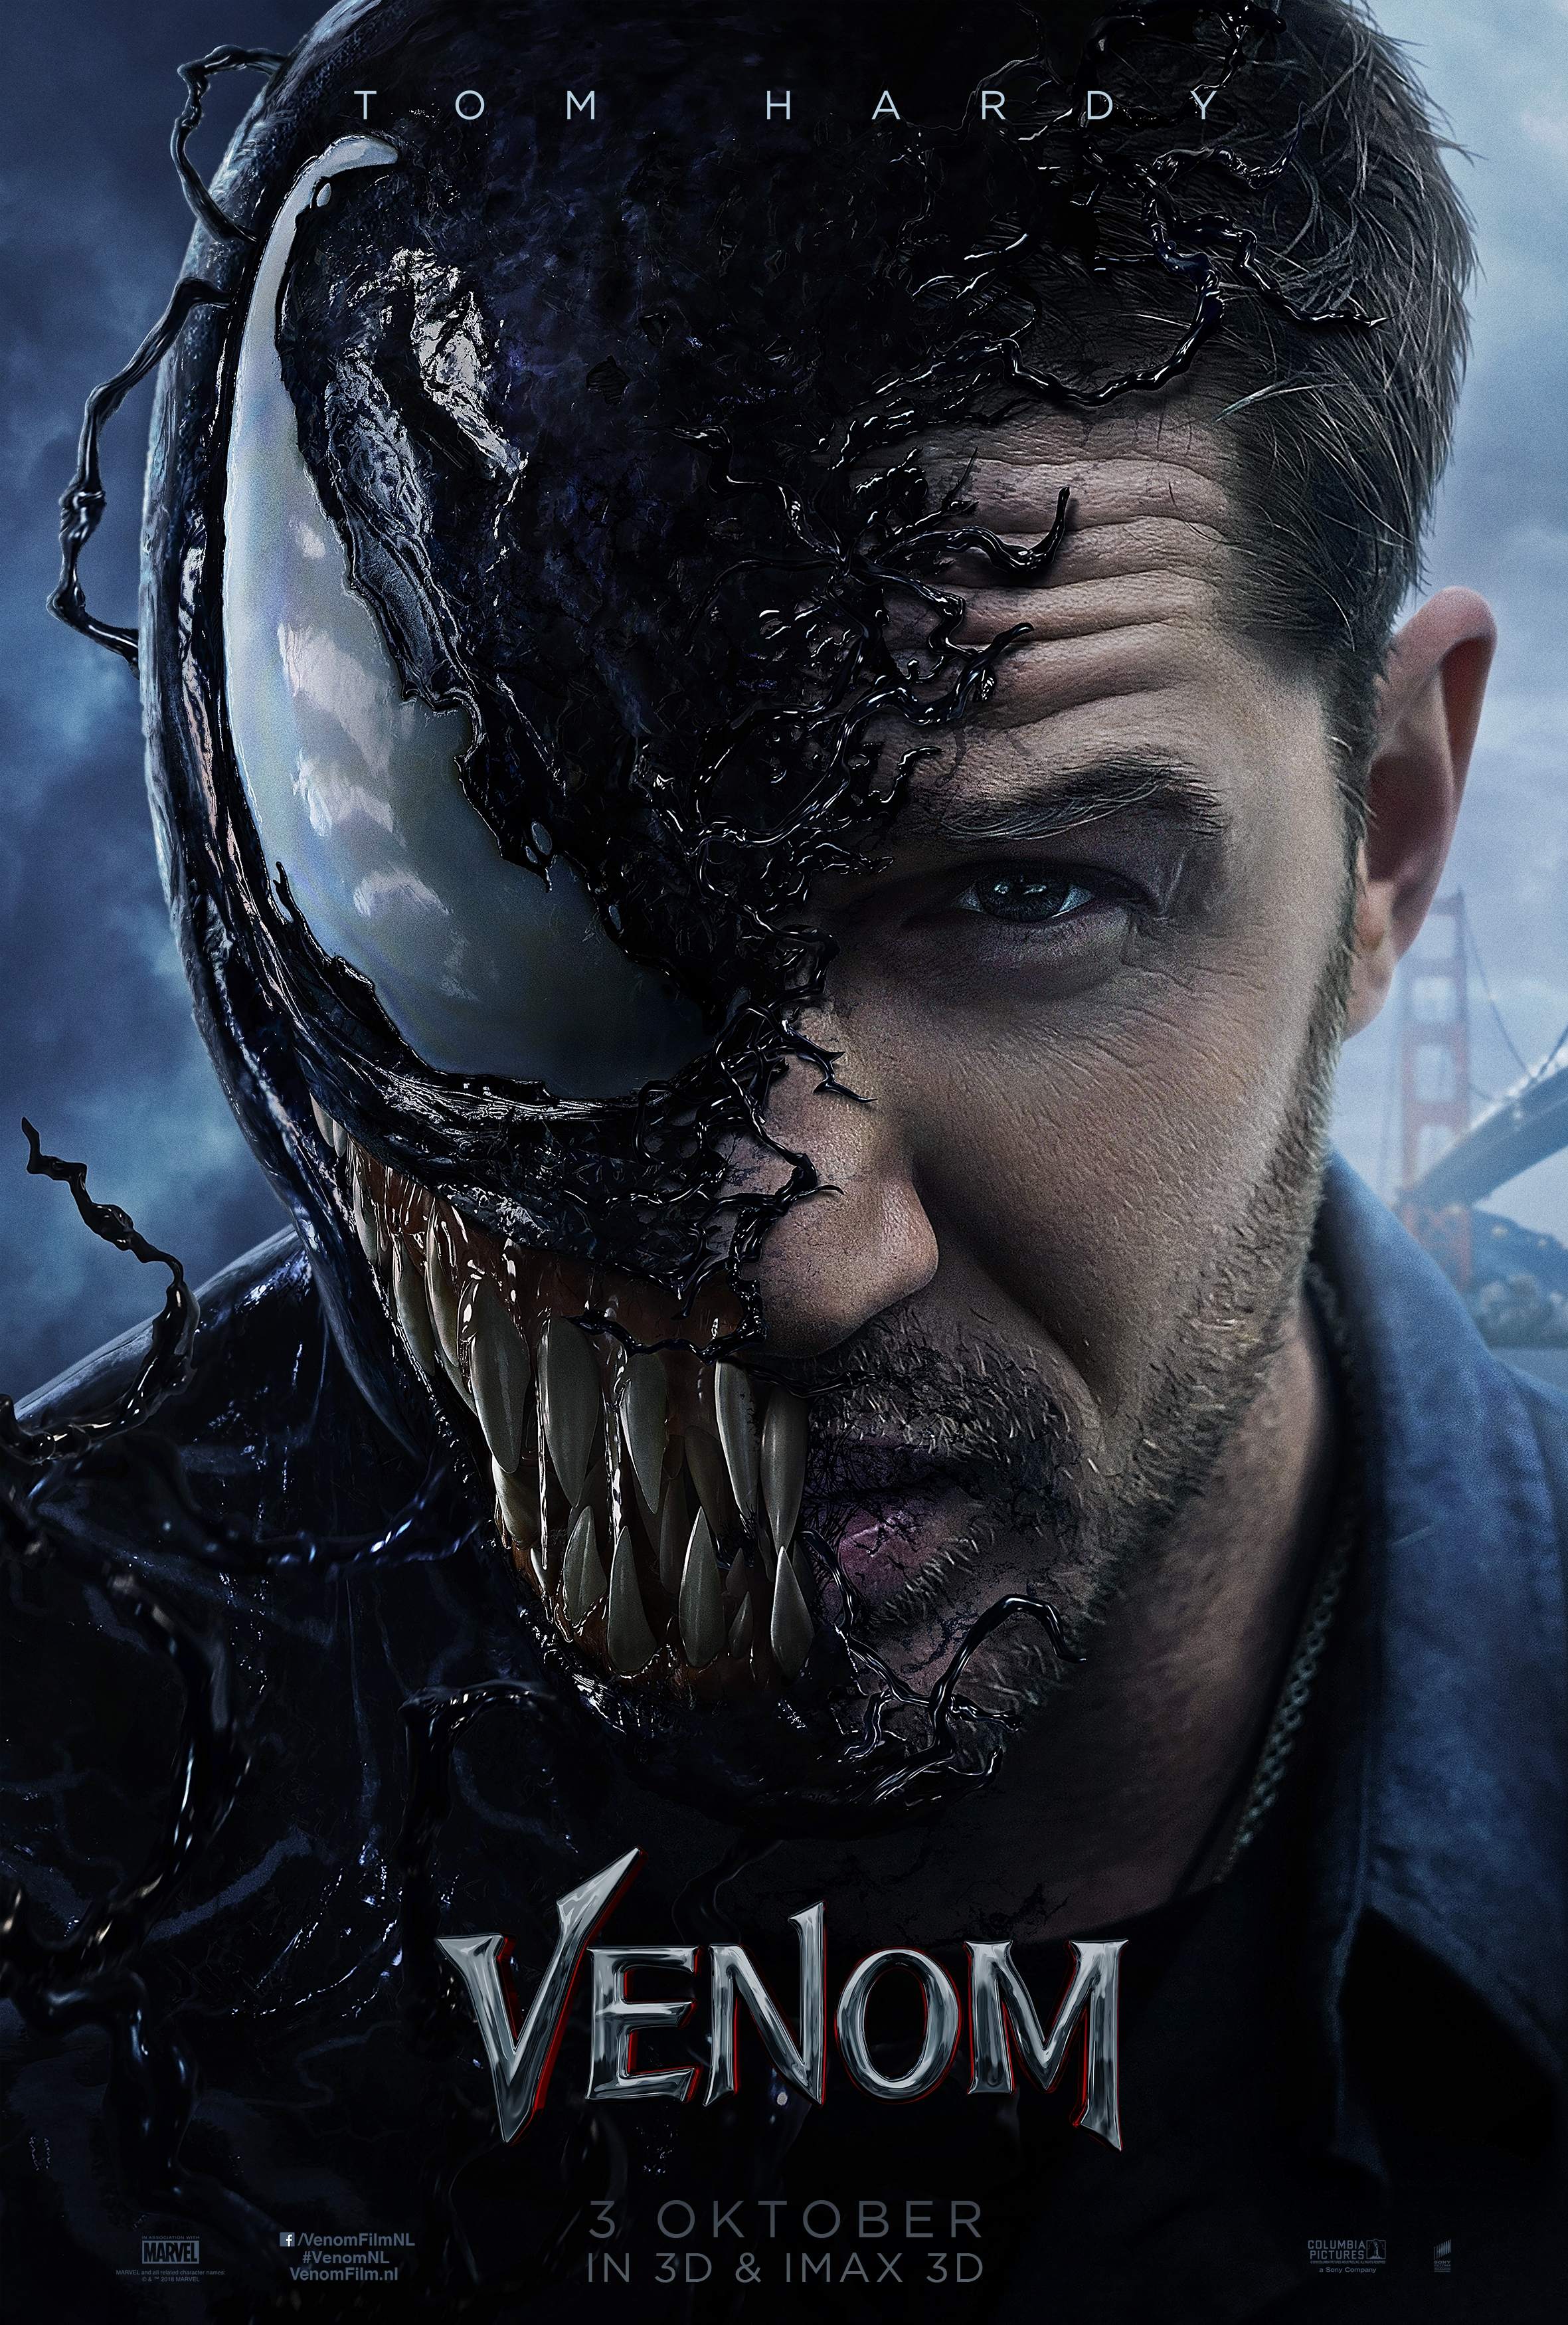 Venom poster, © 2018 Universal Pictures International